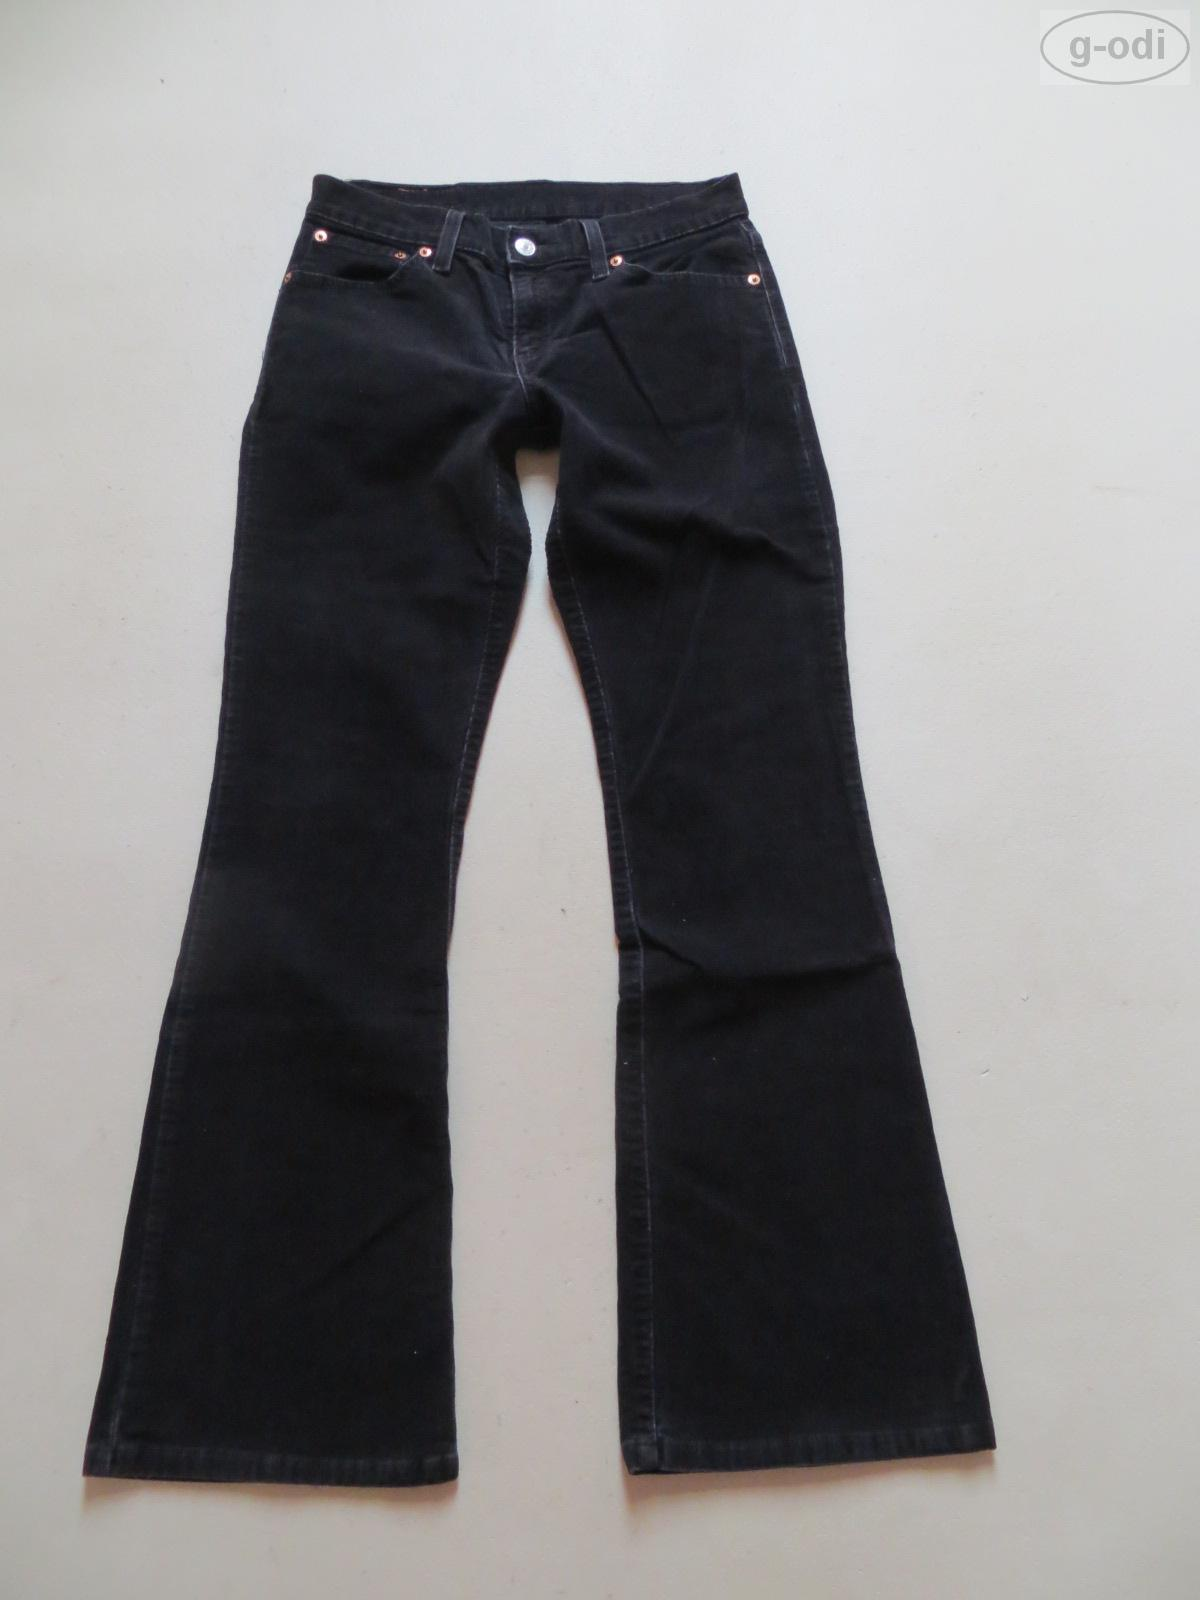 levi 39 s 529 cord bootcut jeans hose w 28 l 32 schwarz black cordhose gr 36 ebay. Black Bedroom Furniture Sets. Home Design Ideas